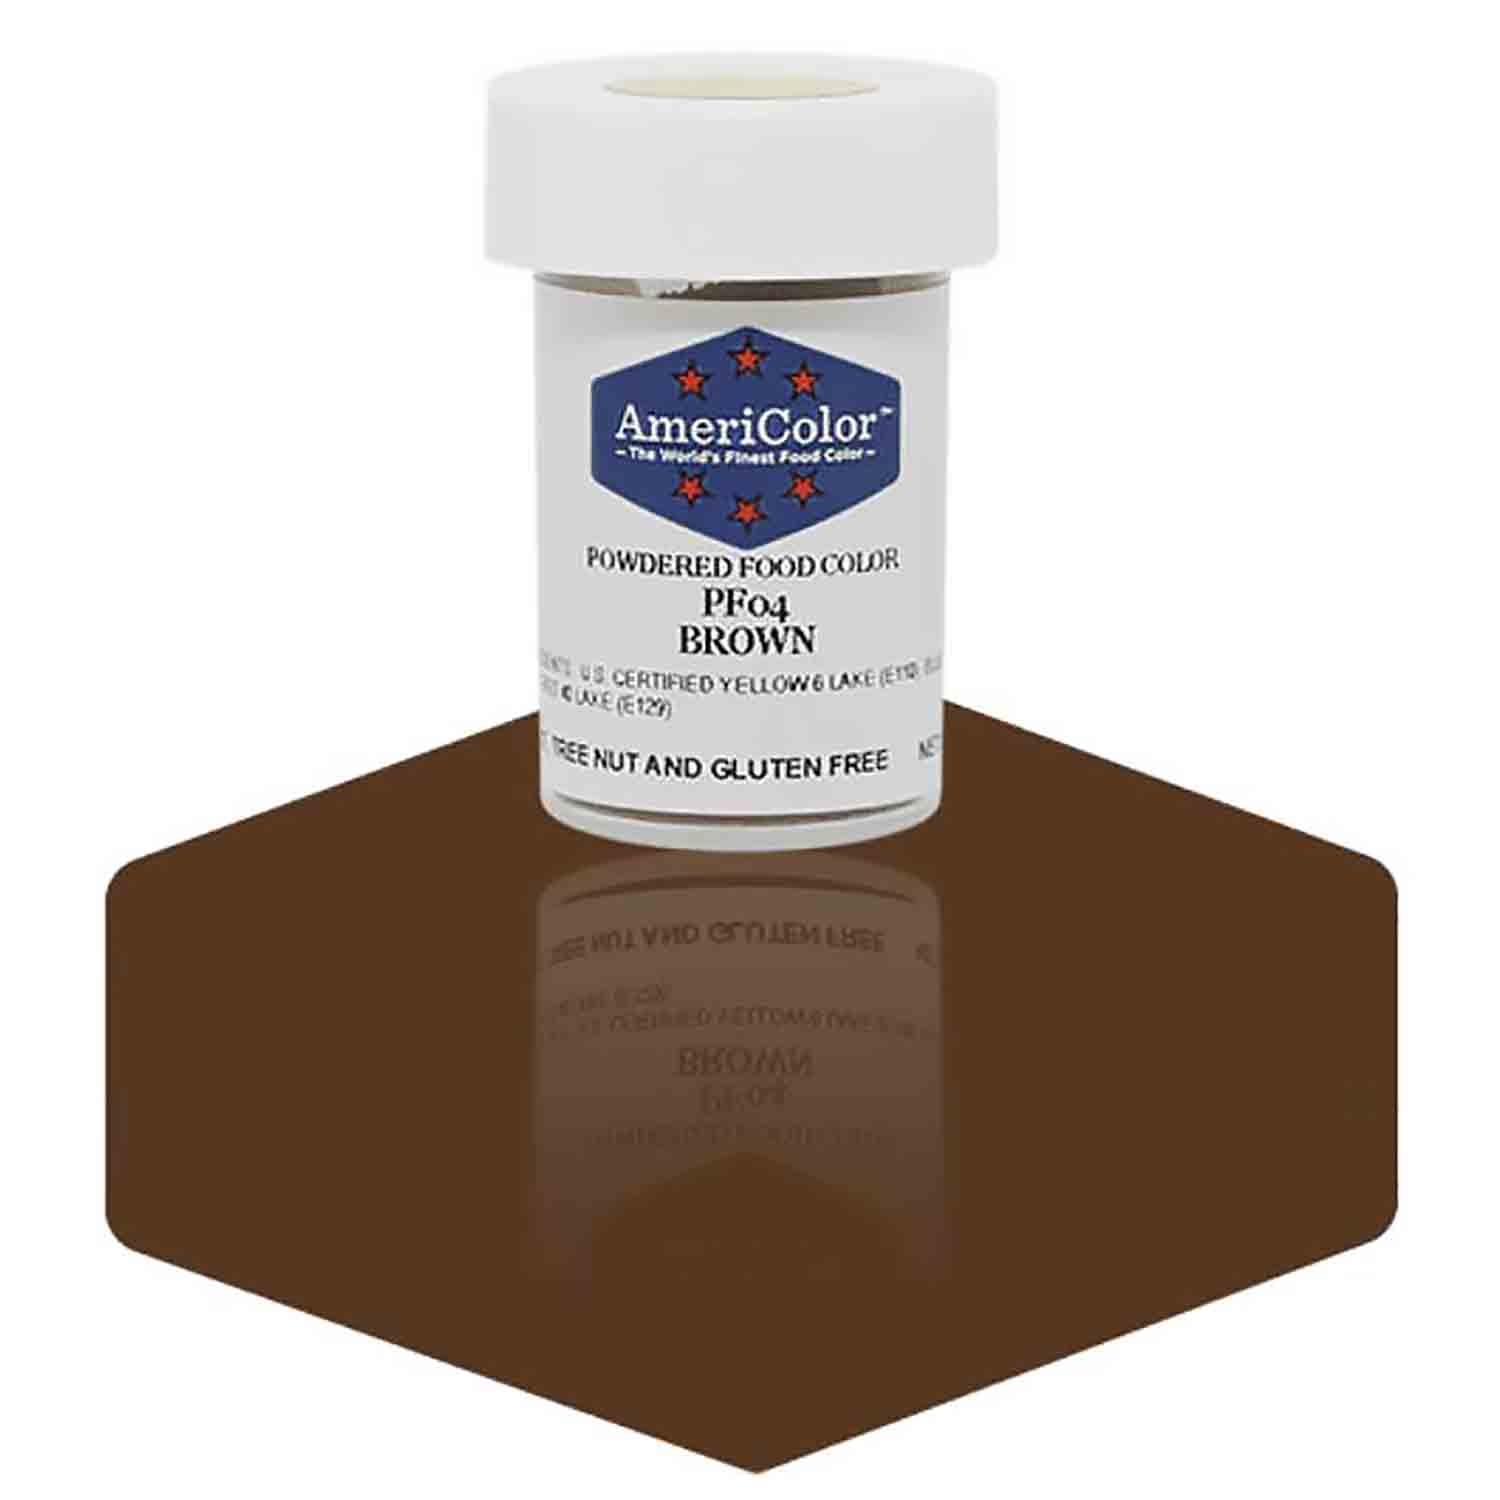 Brown AmeriColor® Powdered Food Color